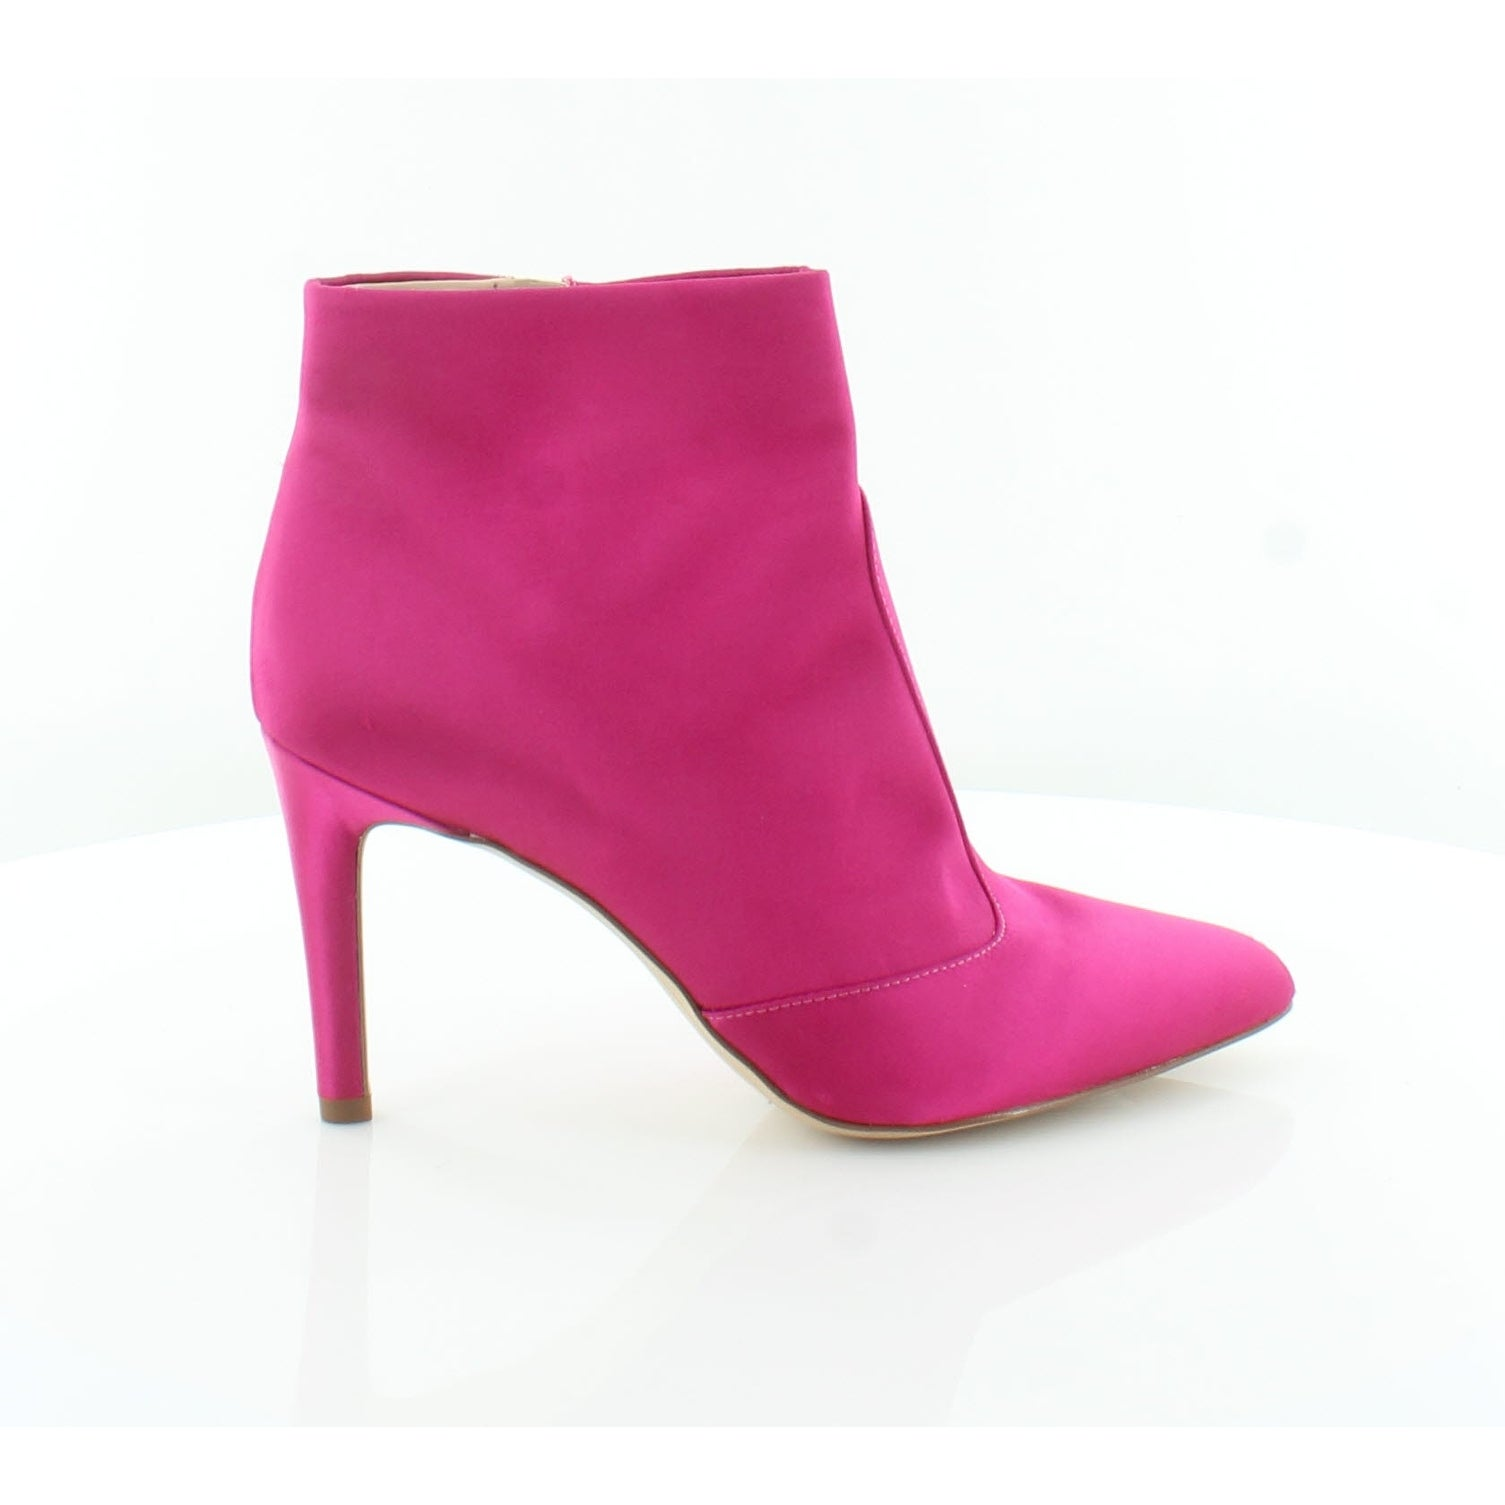 5a60775df83d7 Shop Sam Edelman Olette Women s Heels Hot Pink - 8.5 - Free Shipping ...